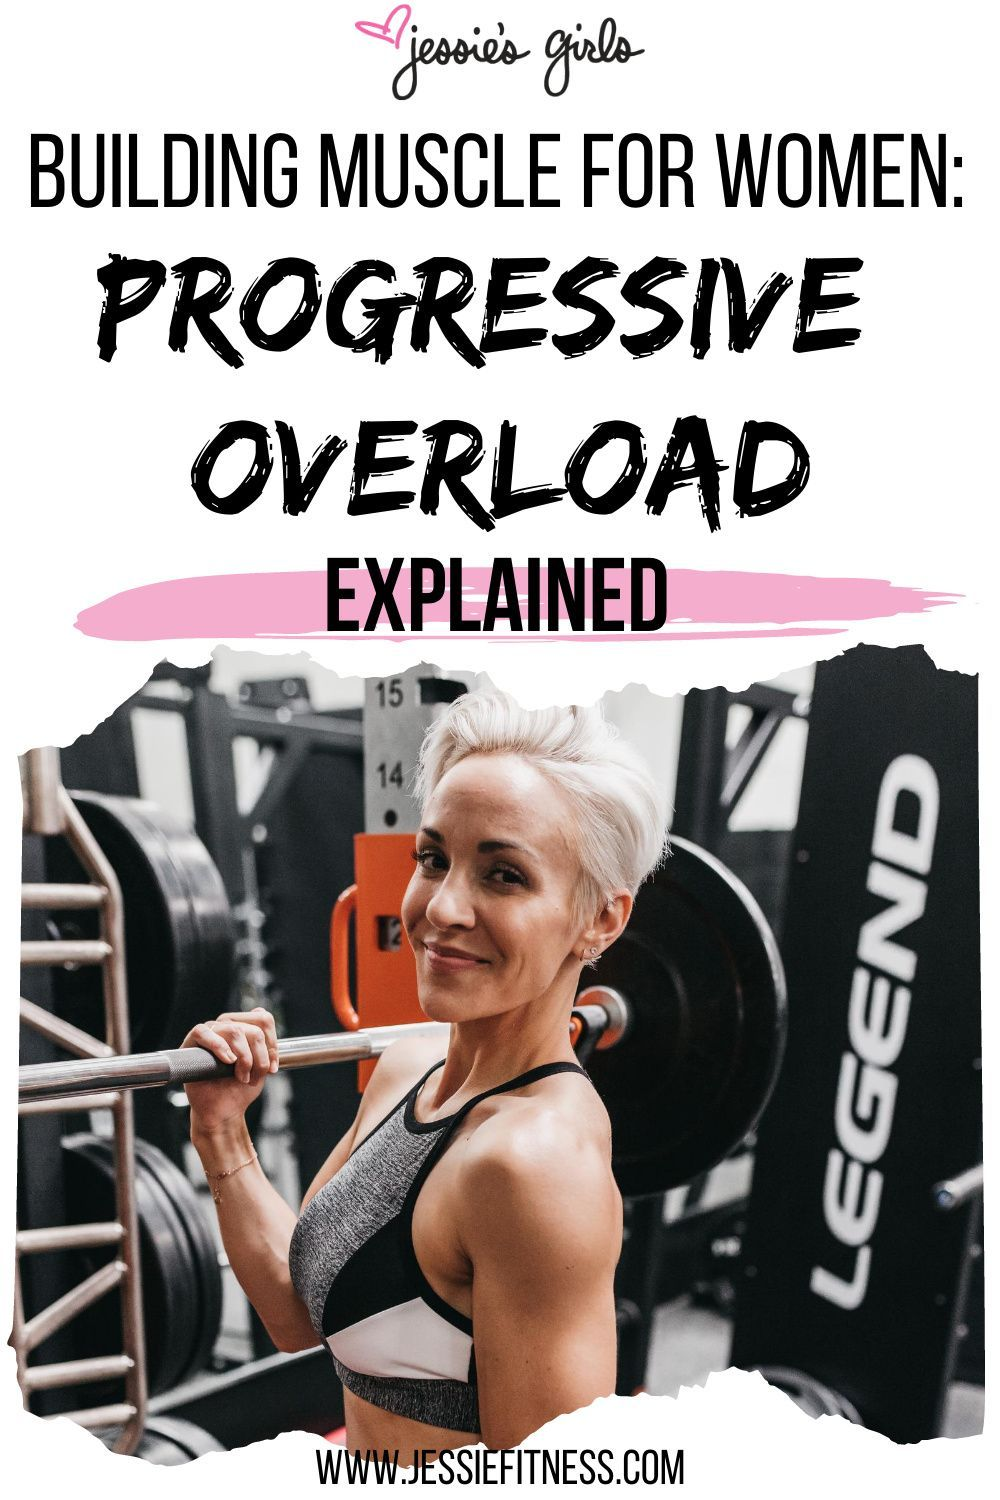 How To Build Muscle for Women: Progressive Overload Explained